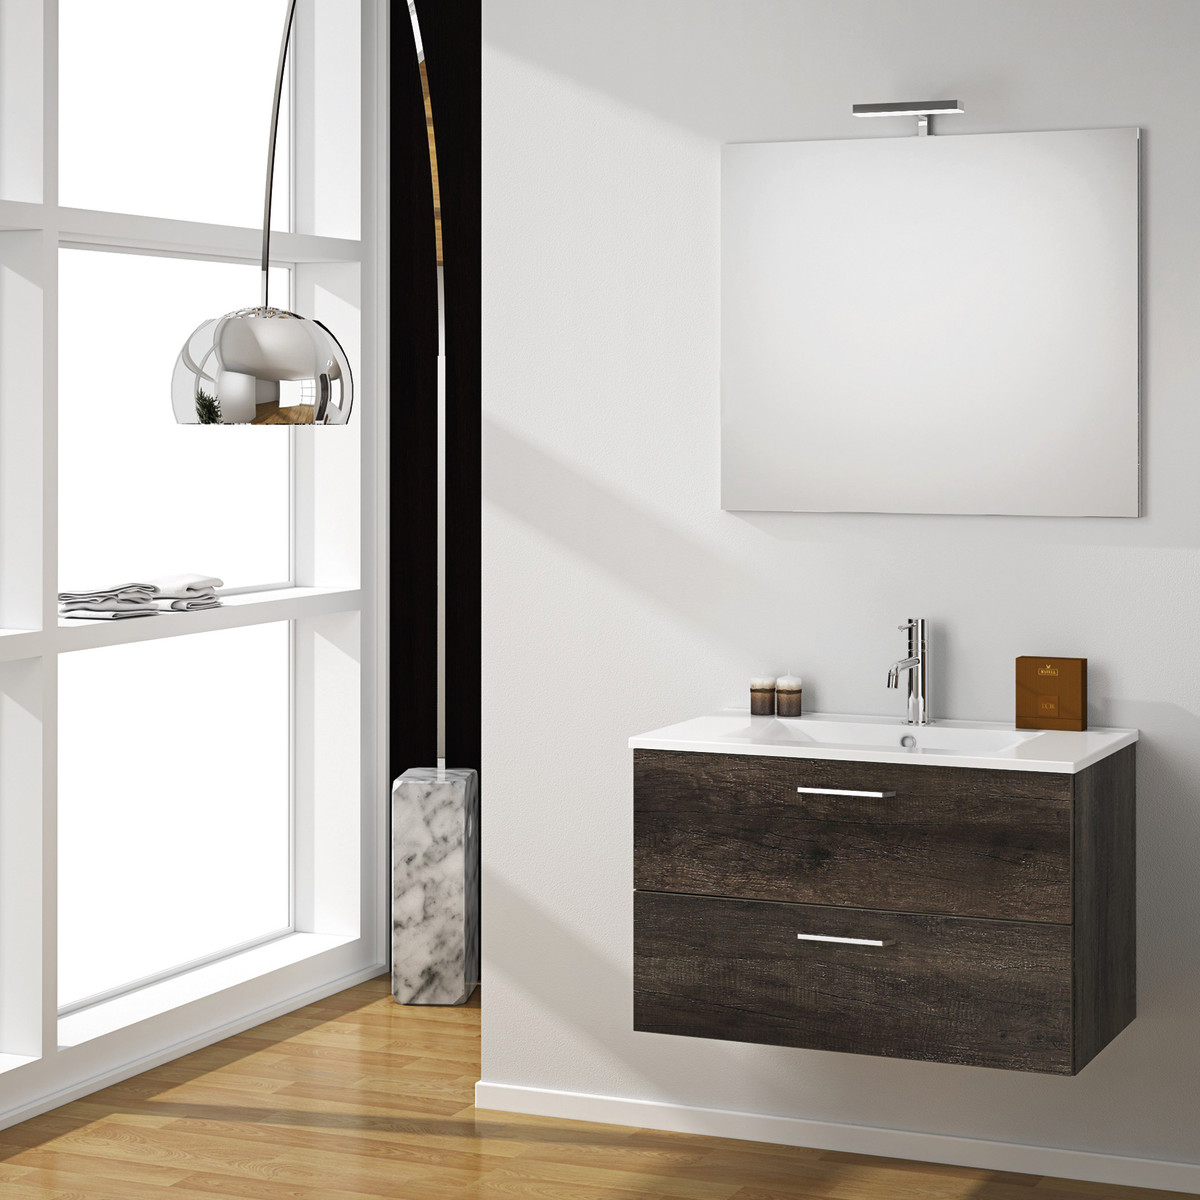 Bagni semeraro simple affordable semeraro specchi with - Semeraro arredo bagno ...